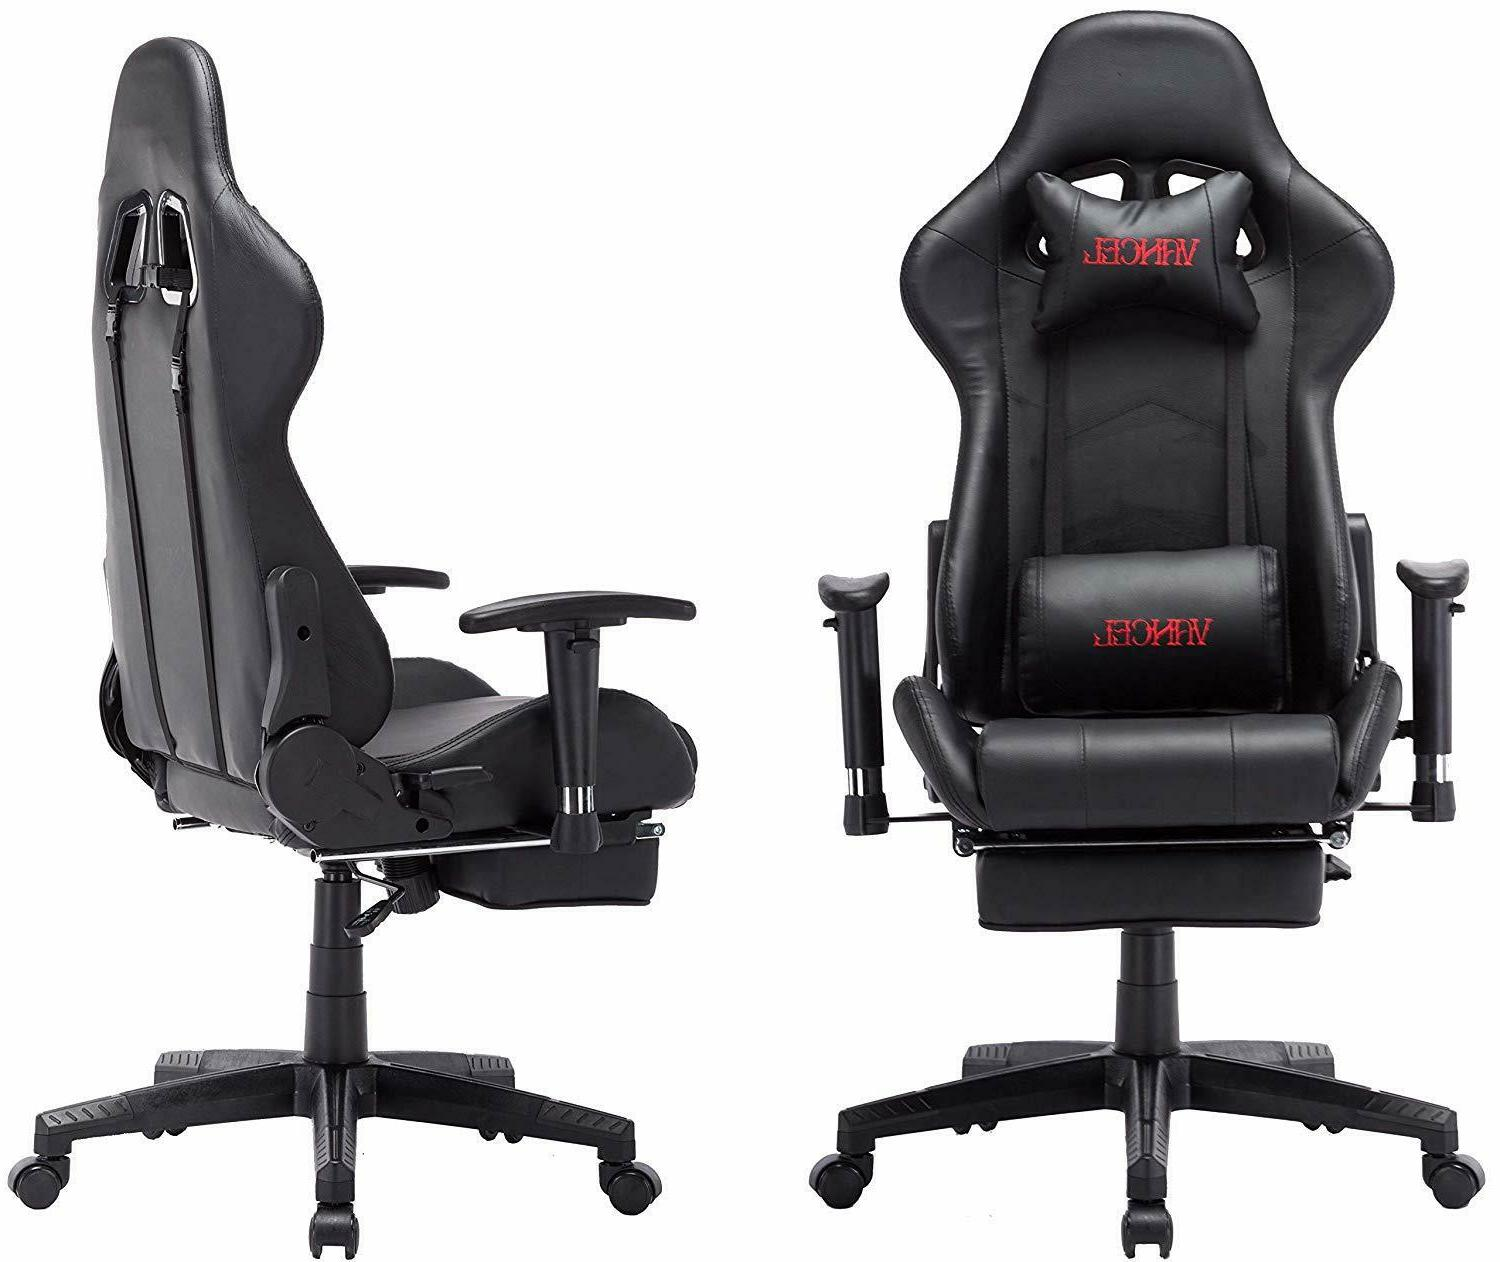 Ergonomic Gaming with Footrest Support Chair